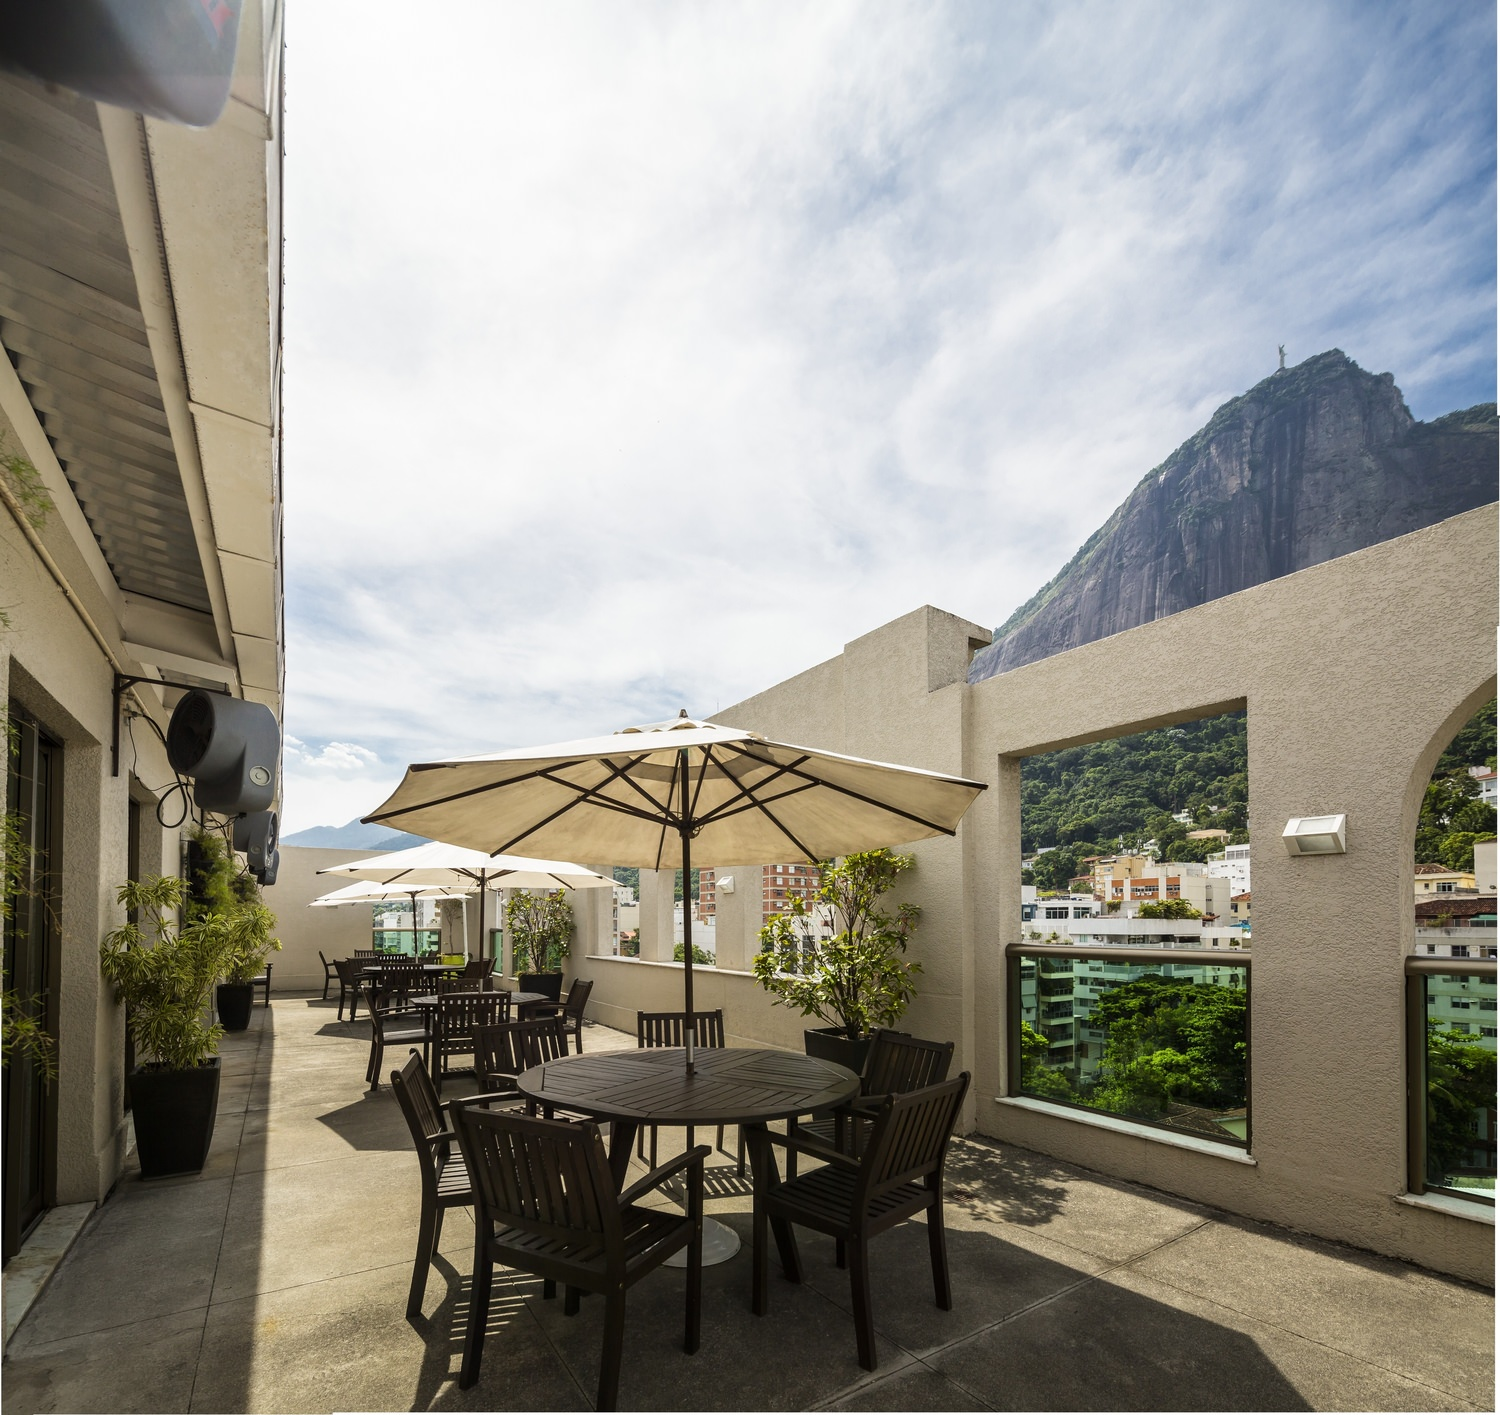 A patio that has some tables with umbrellas and chairs around them outside of a restaurant.